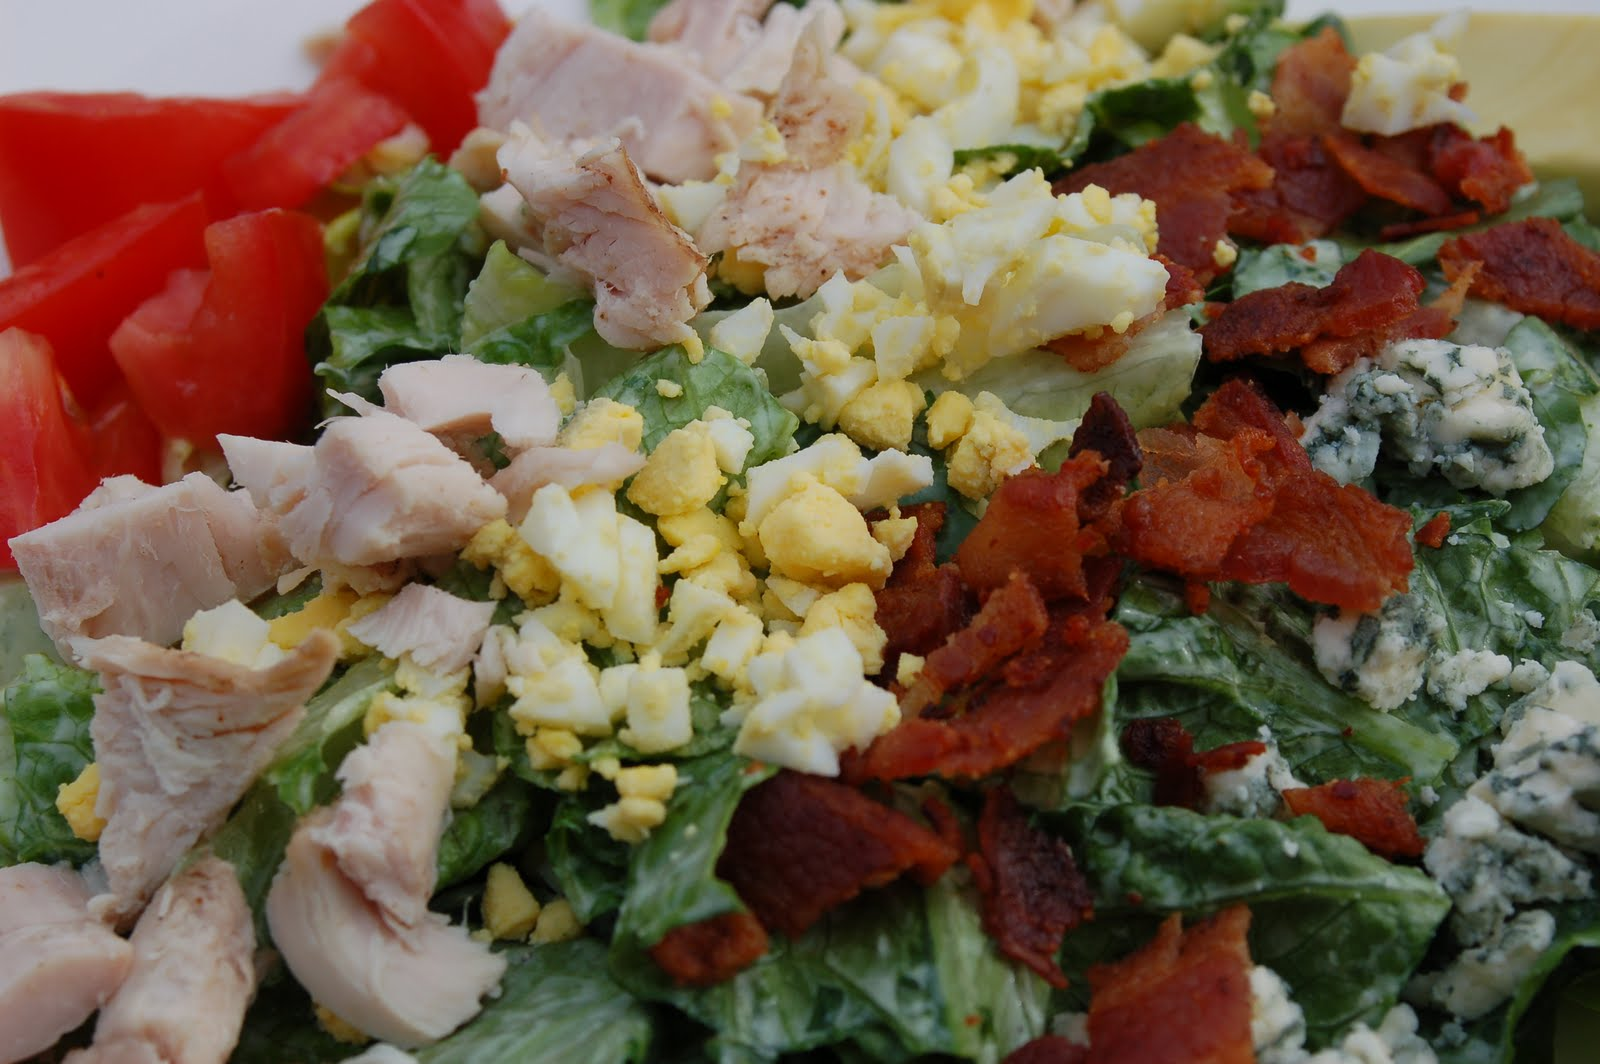 ... Marvelous Meal: Smoked Turkey Cobb Salad with Green Goddess Dressing